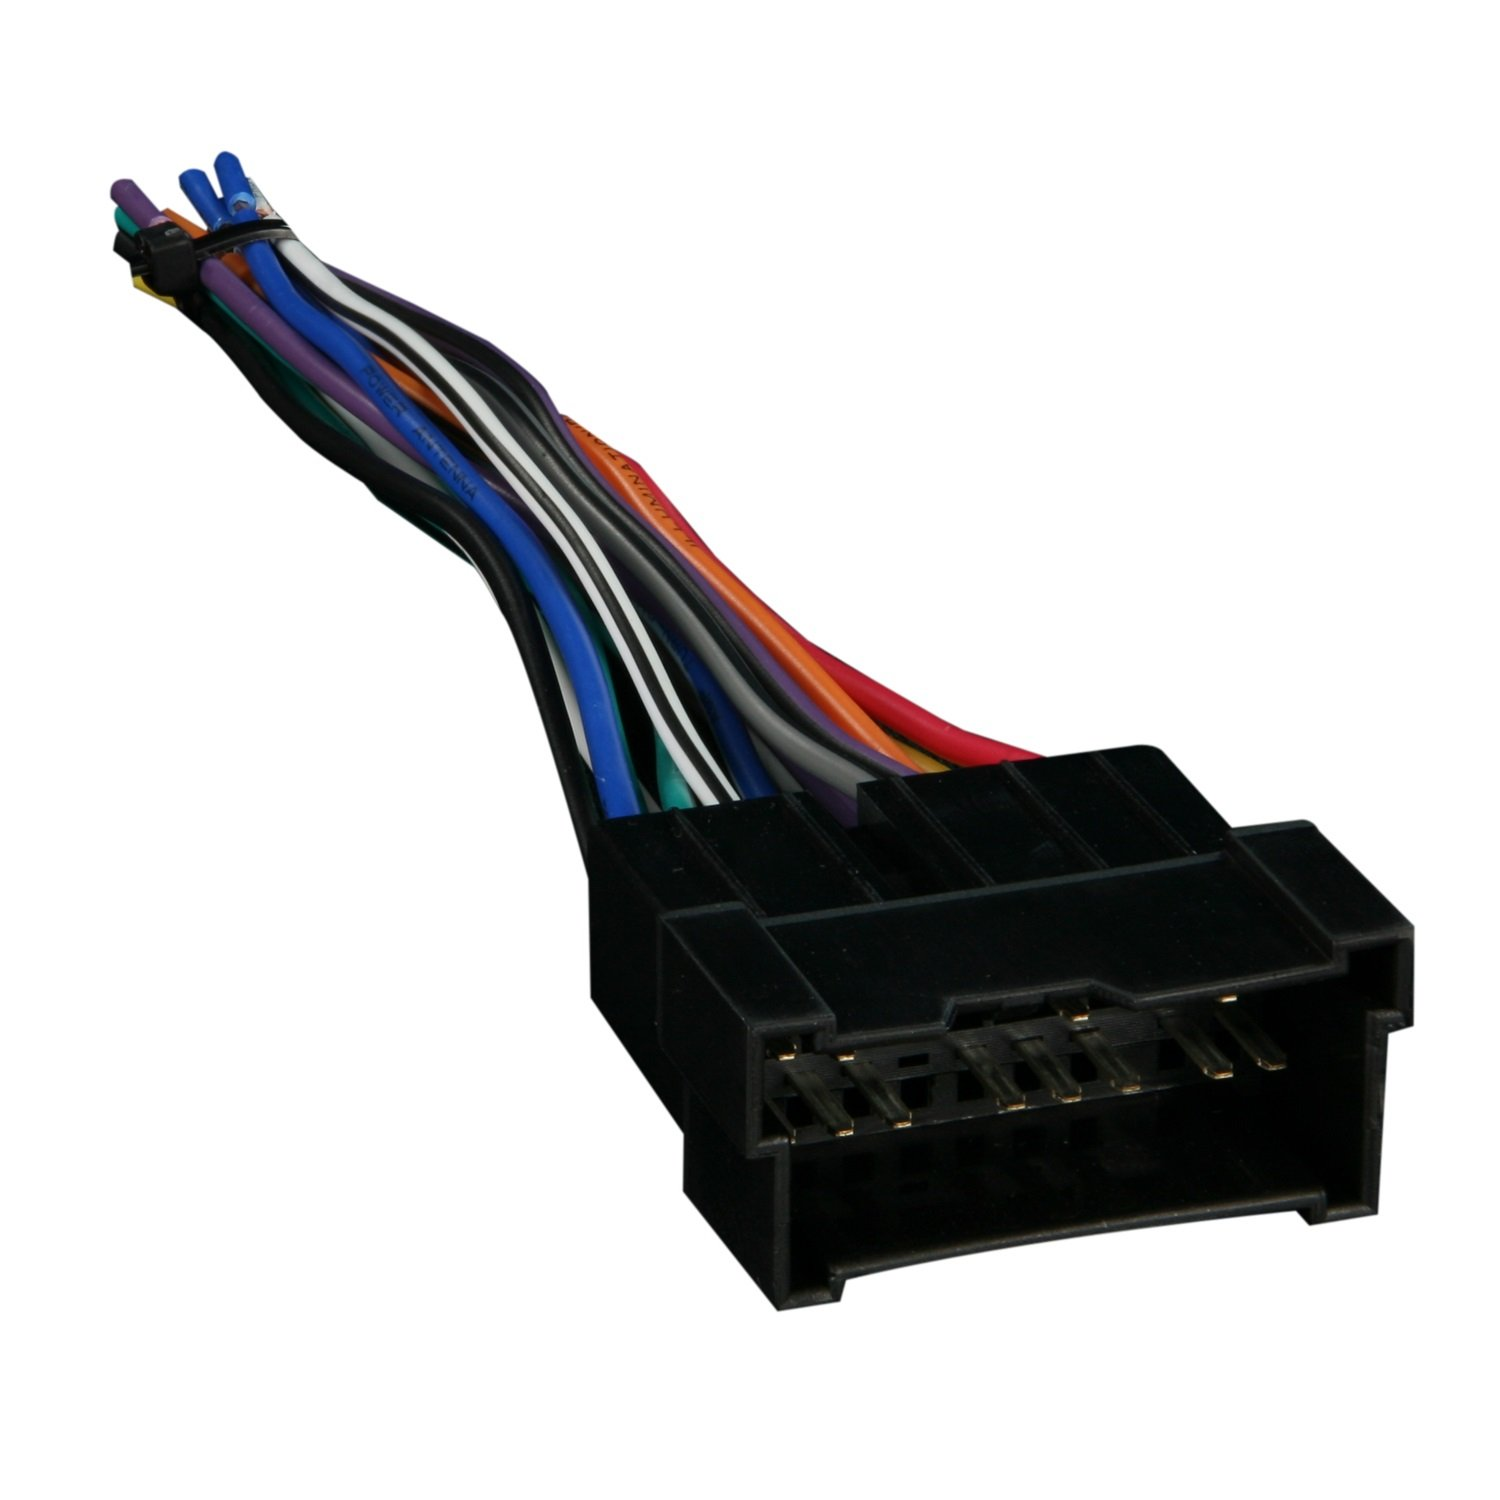 617yeBmOquL._SL1500_ amazon com metra 70 7301 radio wiring harness for hyundai kia 99 5 Wire Trailer Harness Diagram at couponss.co